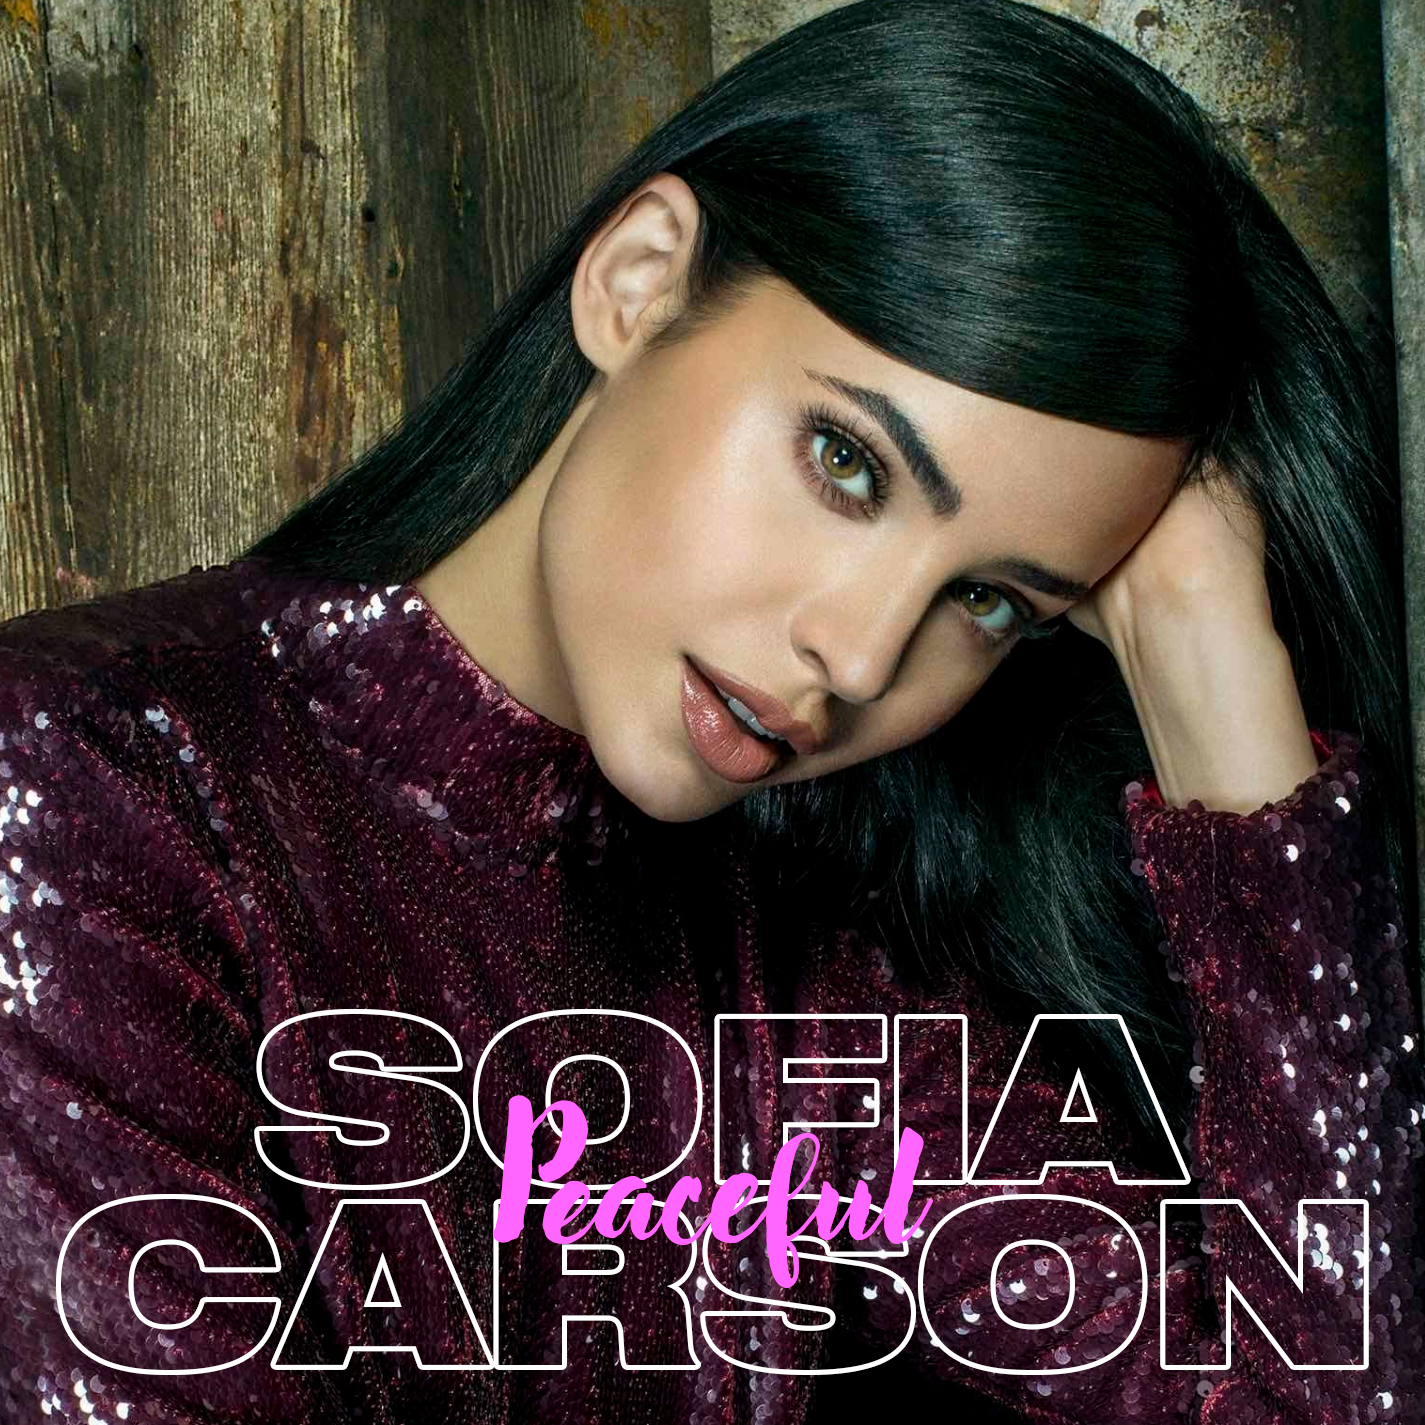 Peaceful (Sofia Carson album)